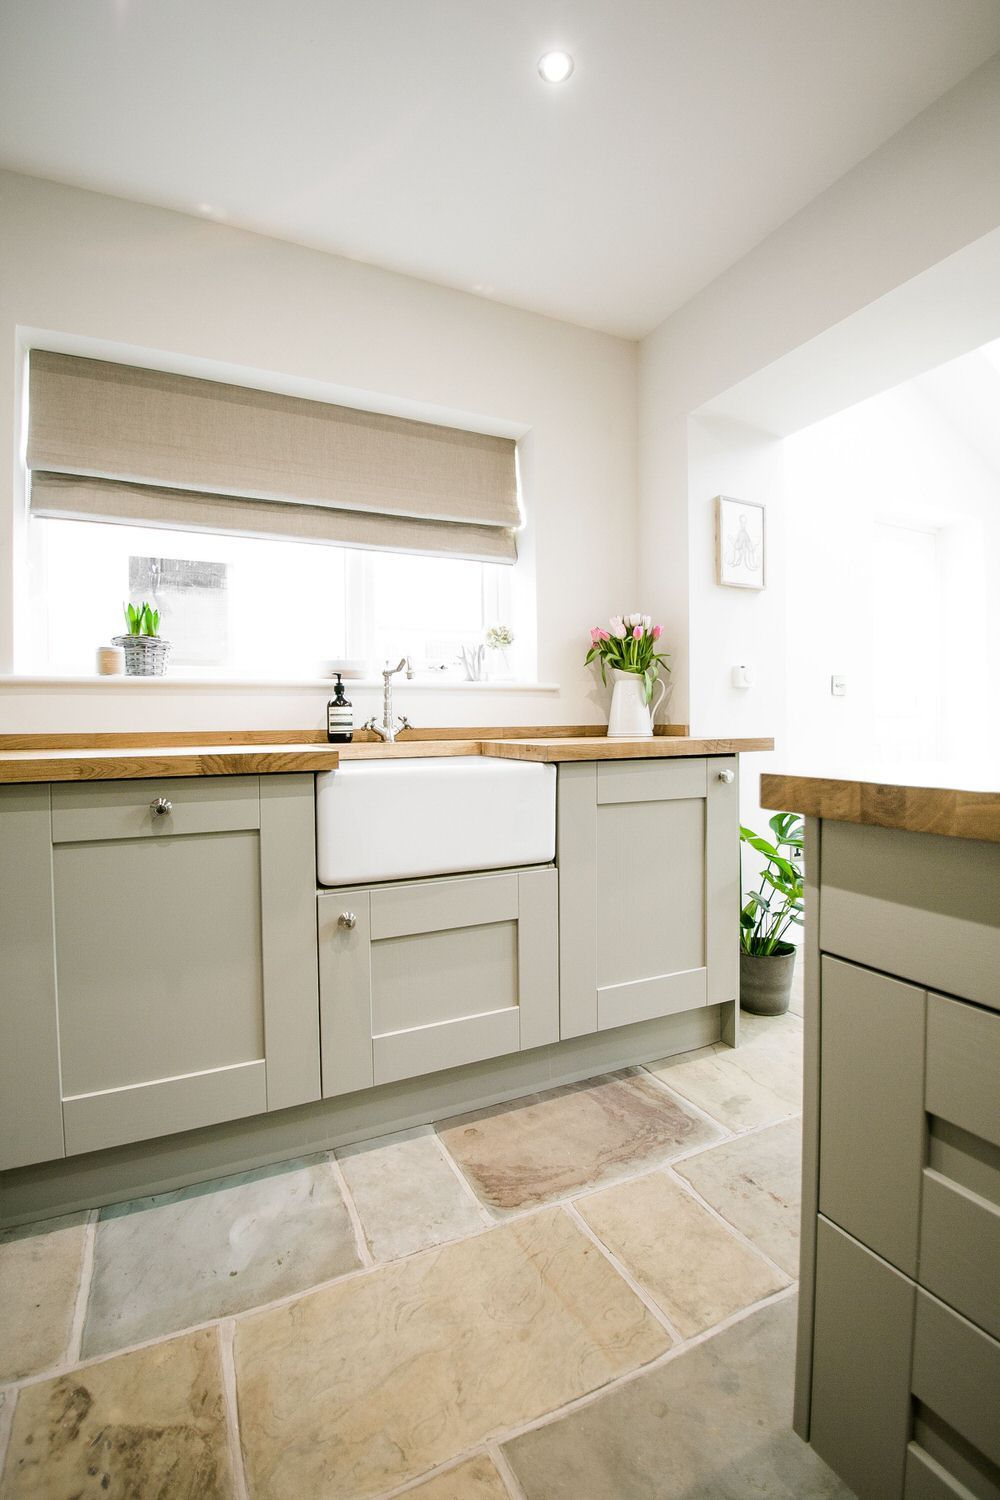 Next up is this fabulous kitchen belonging to Lou @louby91 ✨ What ...